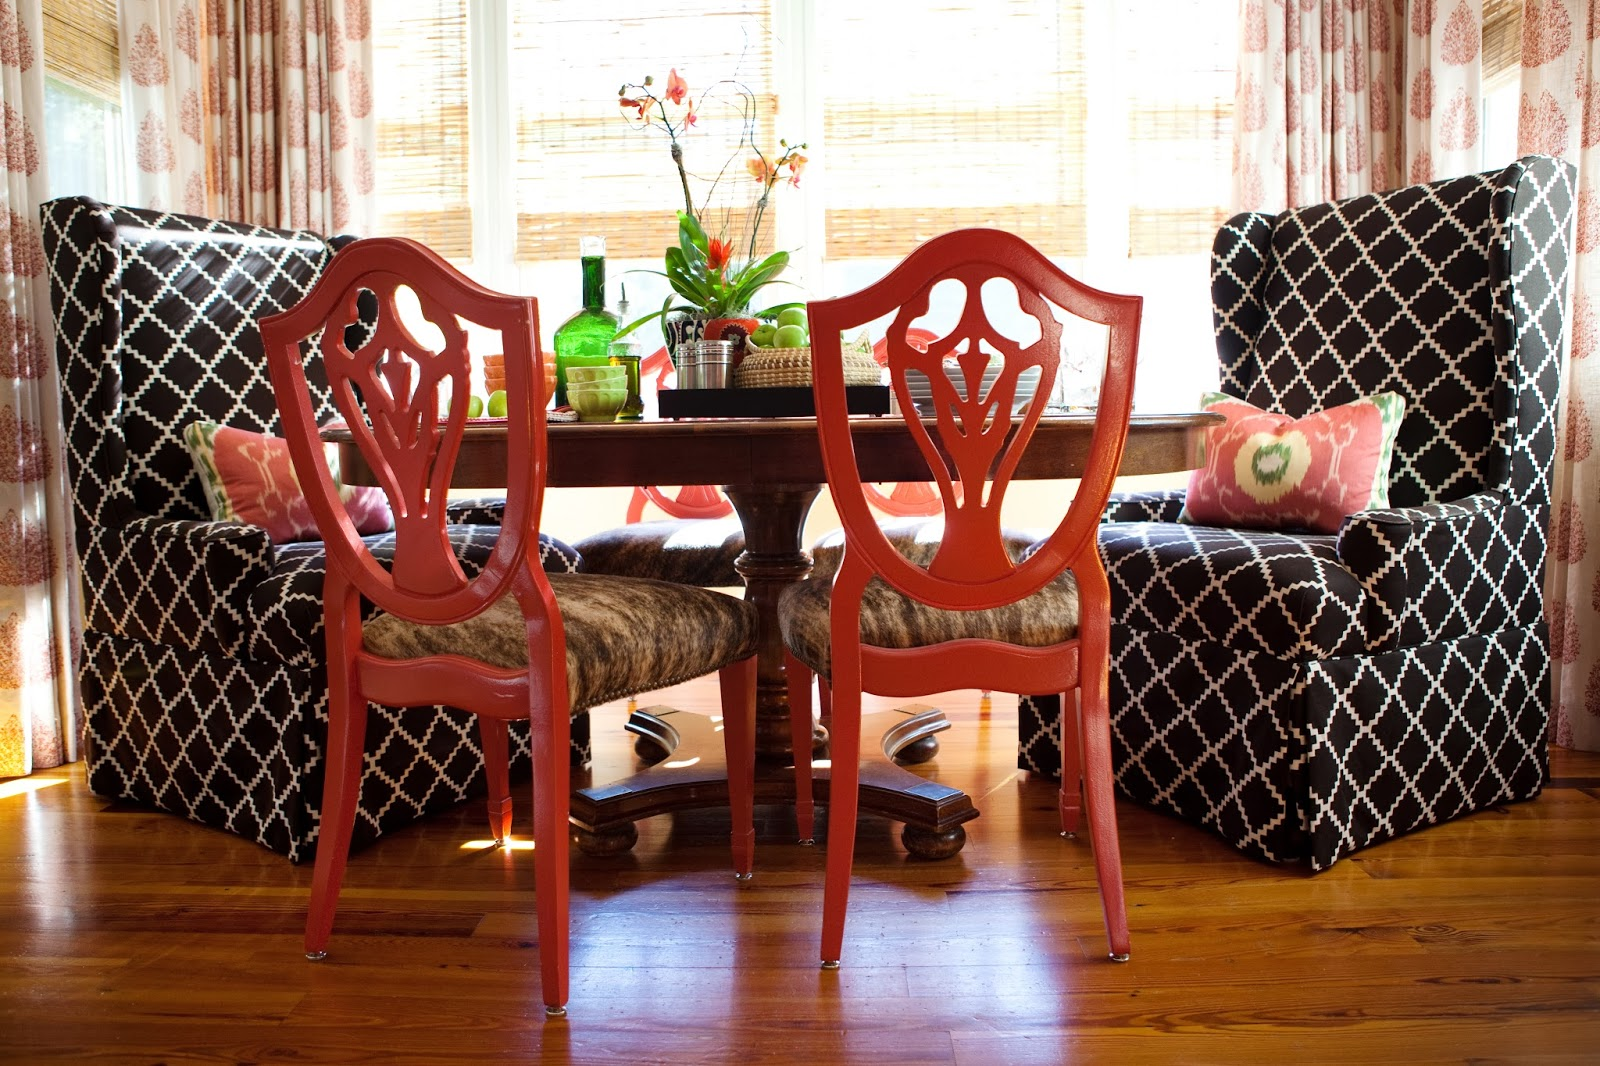 i suwannee: a week of design - a raleigh family room